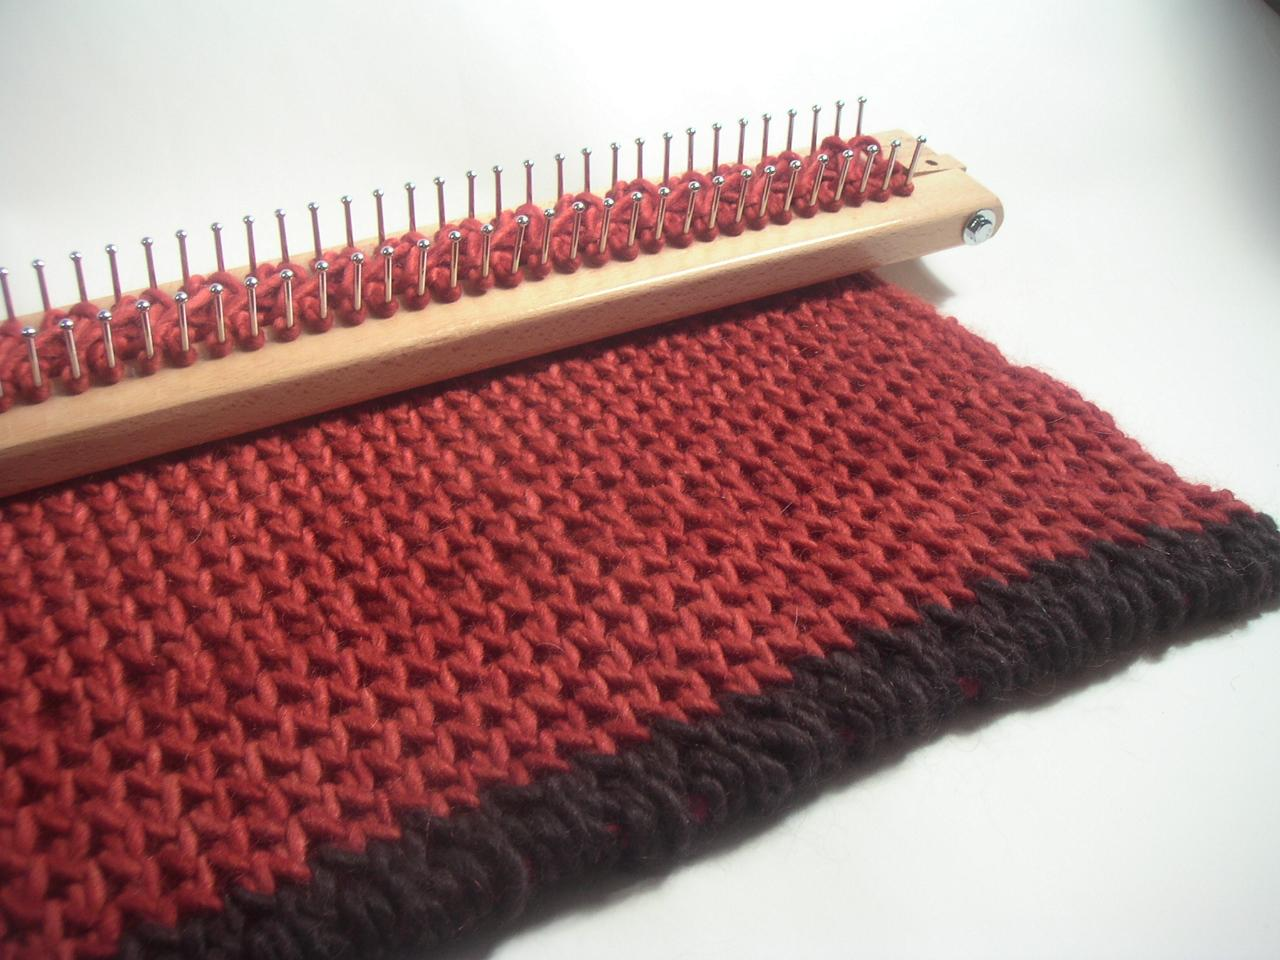 How To Knit A Rug New Rug Project A Knitting Board Blog